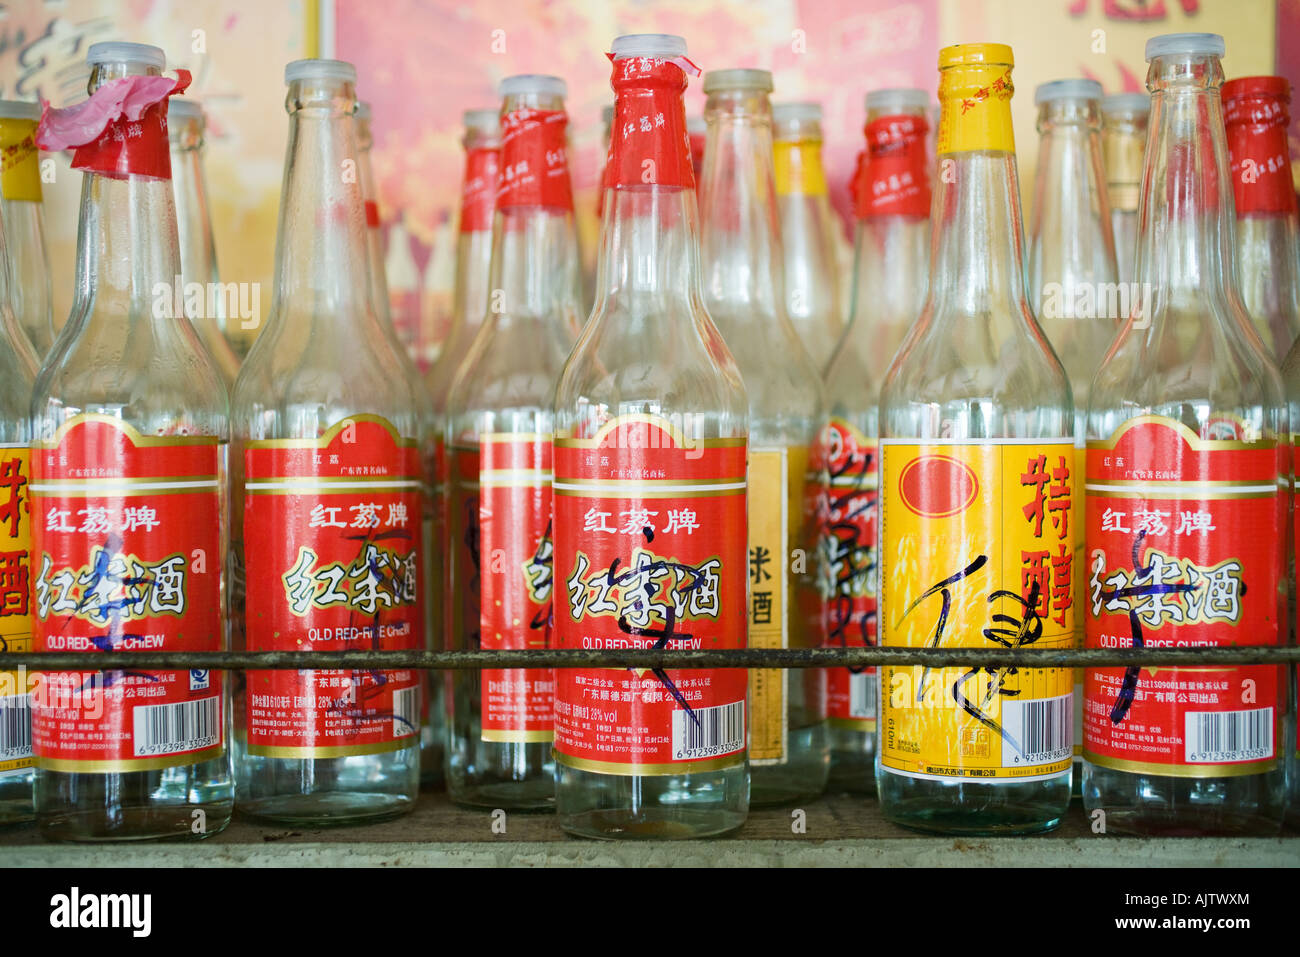 Empty bottles with Chinese script on labels - Stock Image